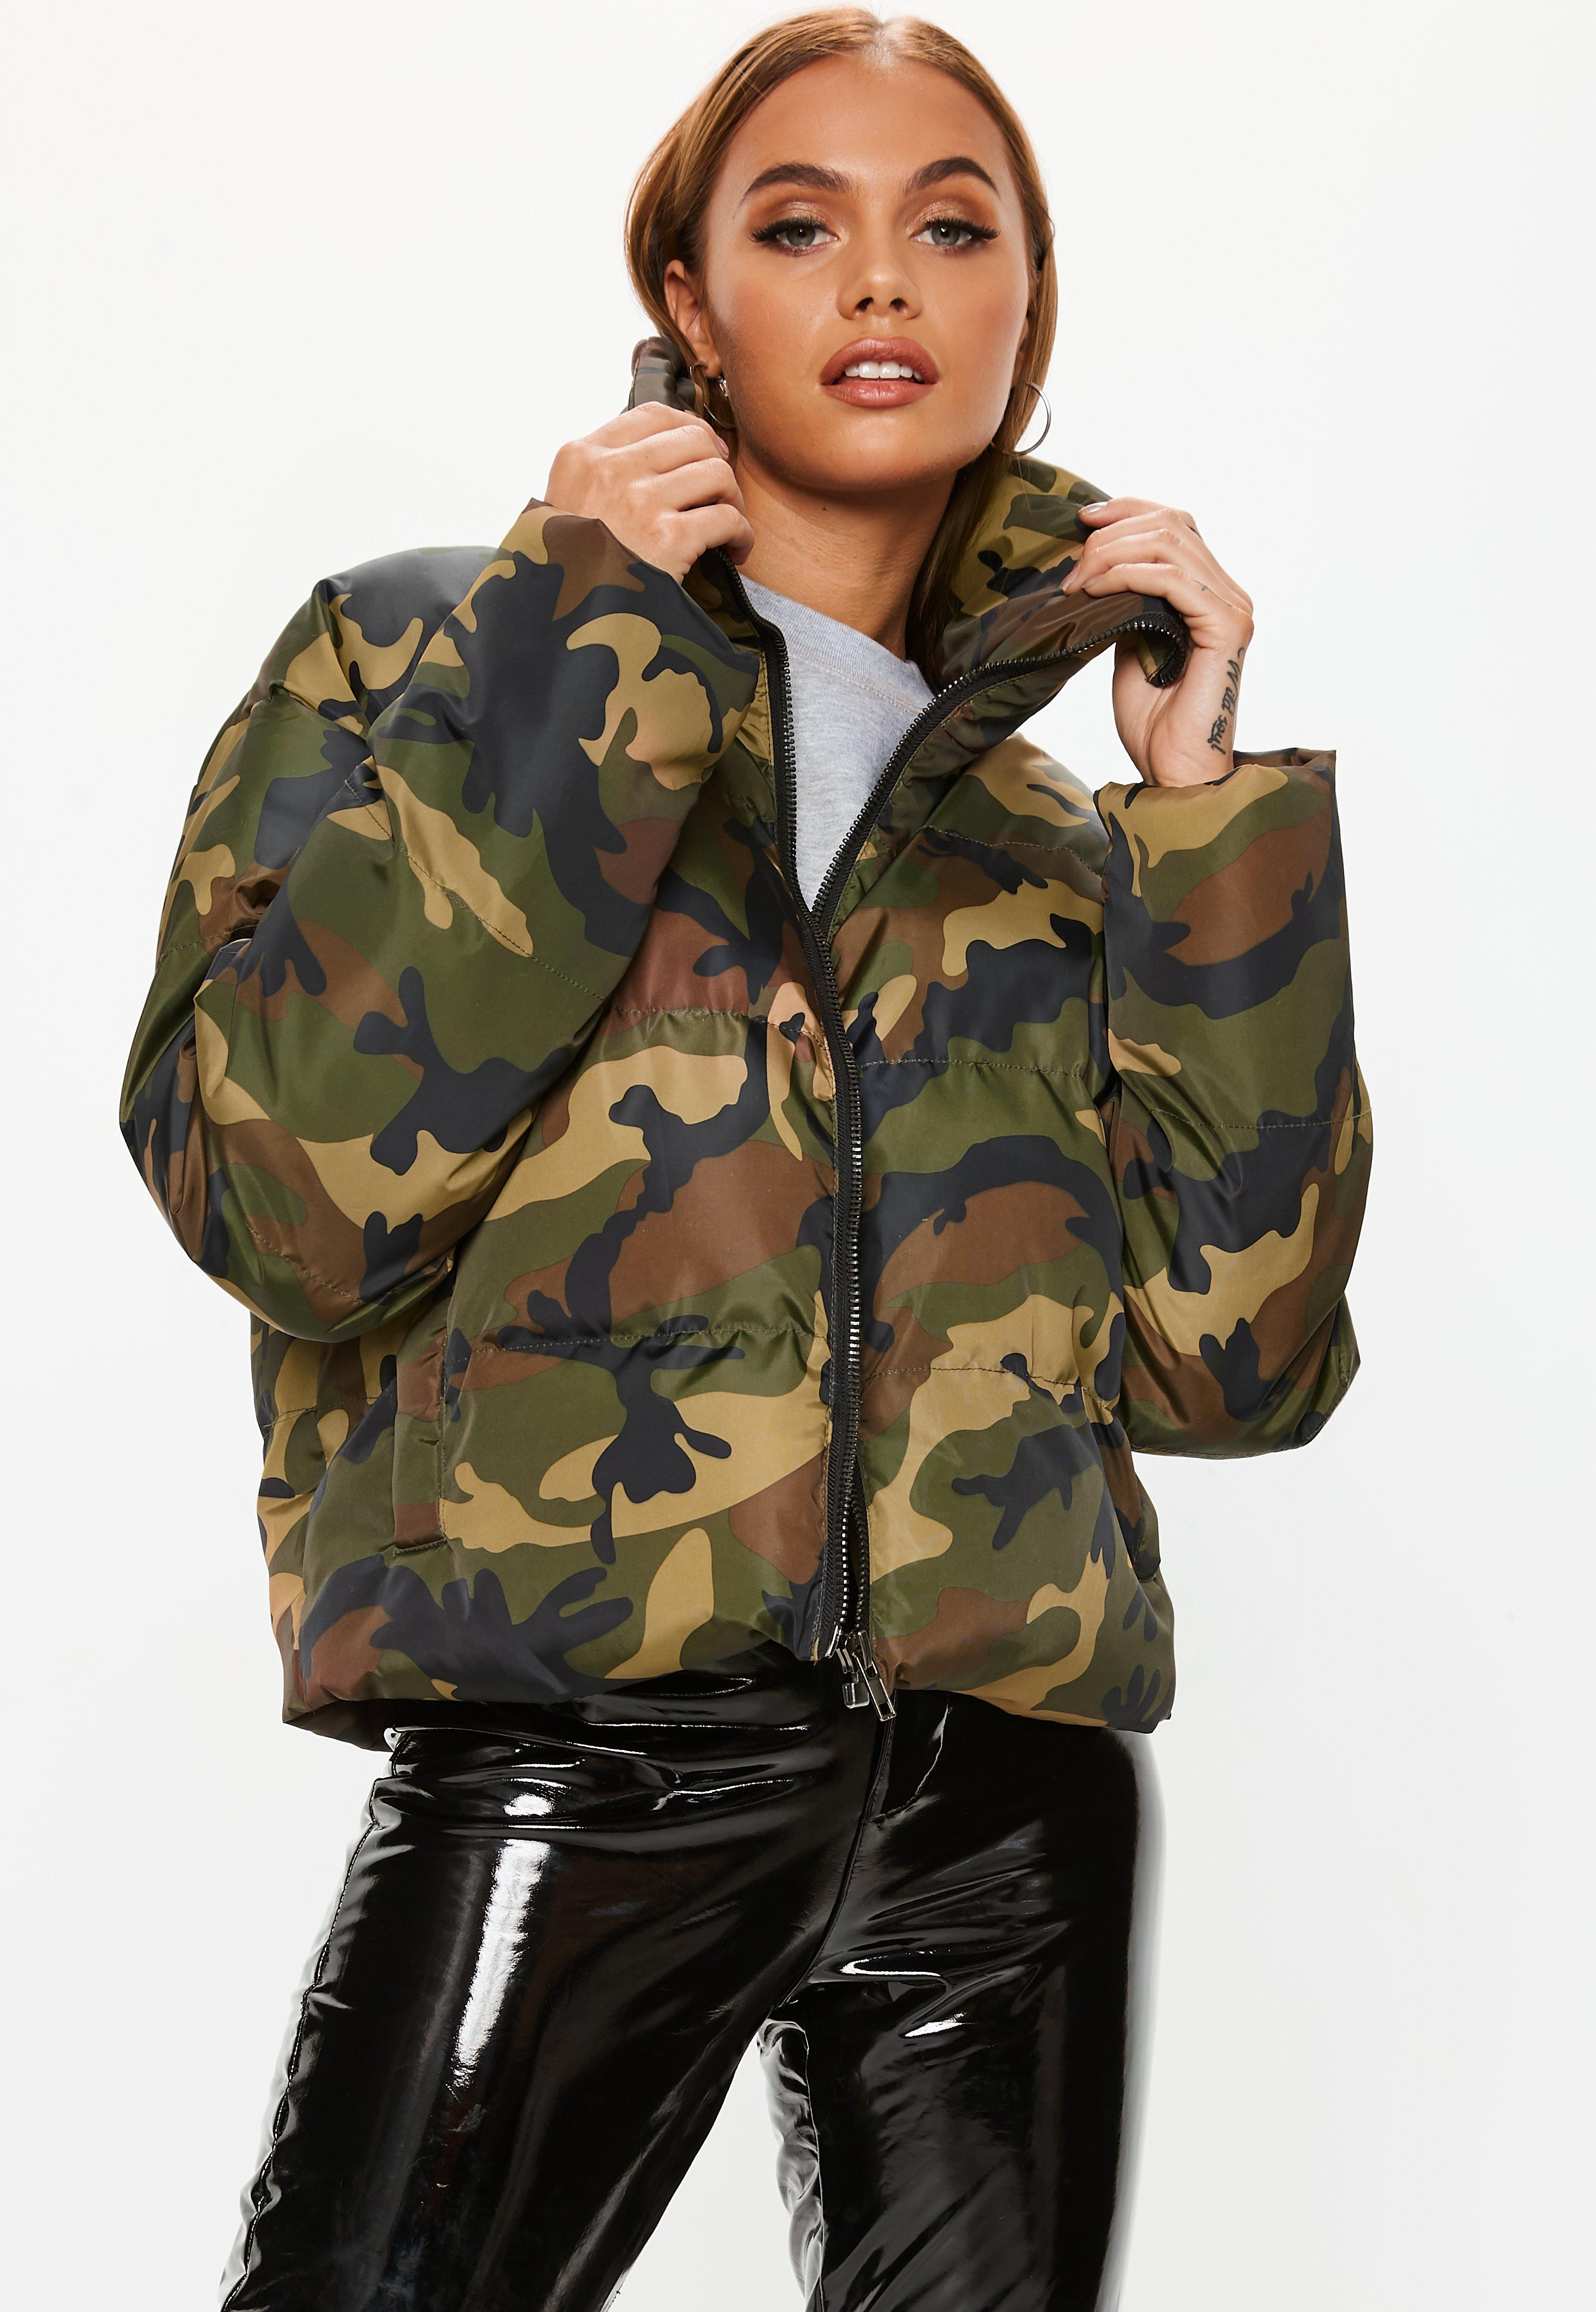 Camouflage Dresses & Tops - Camo Fashion - Missguided